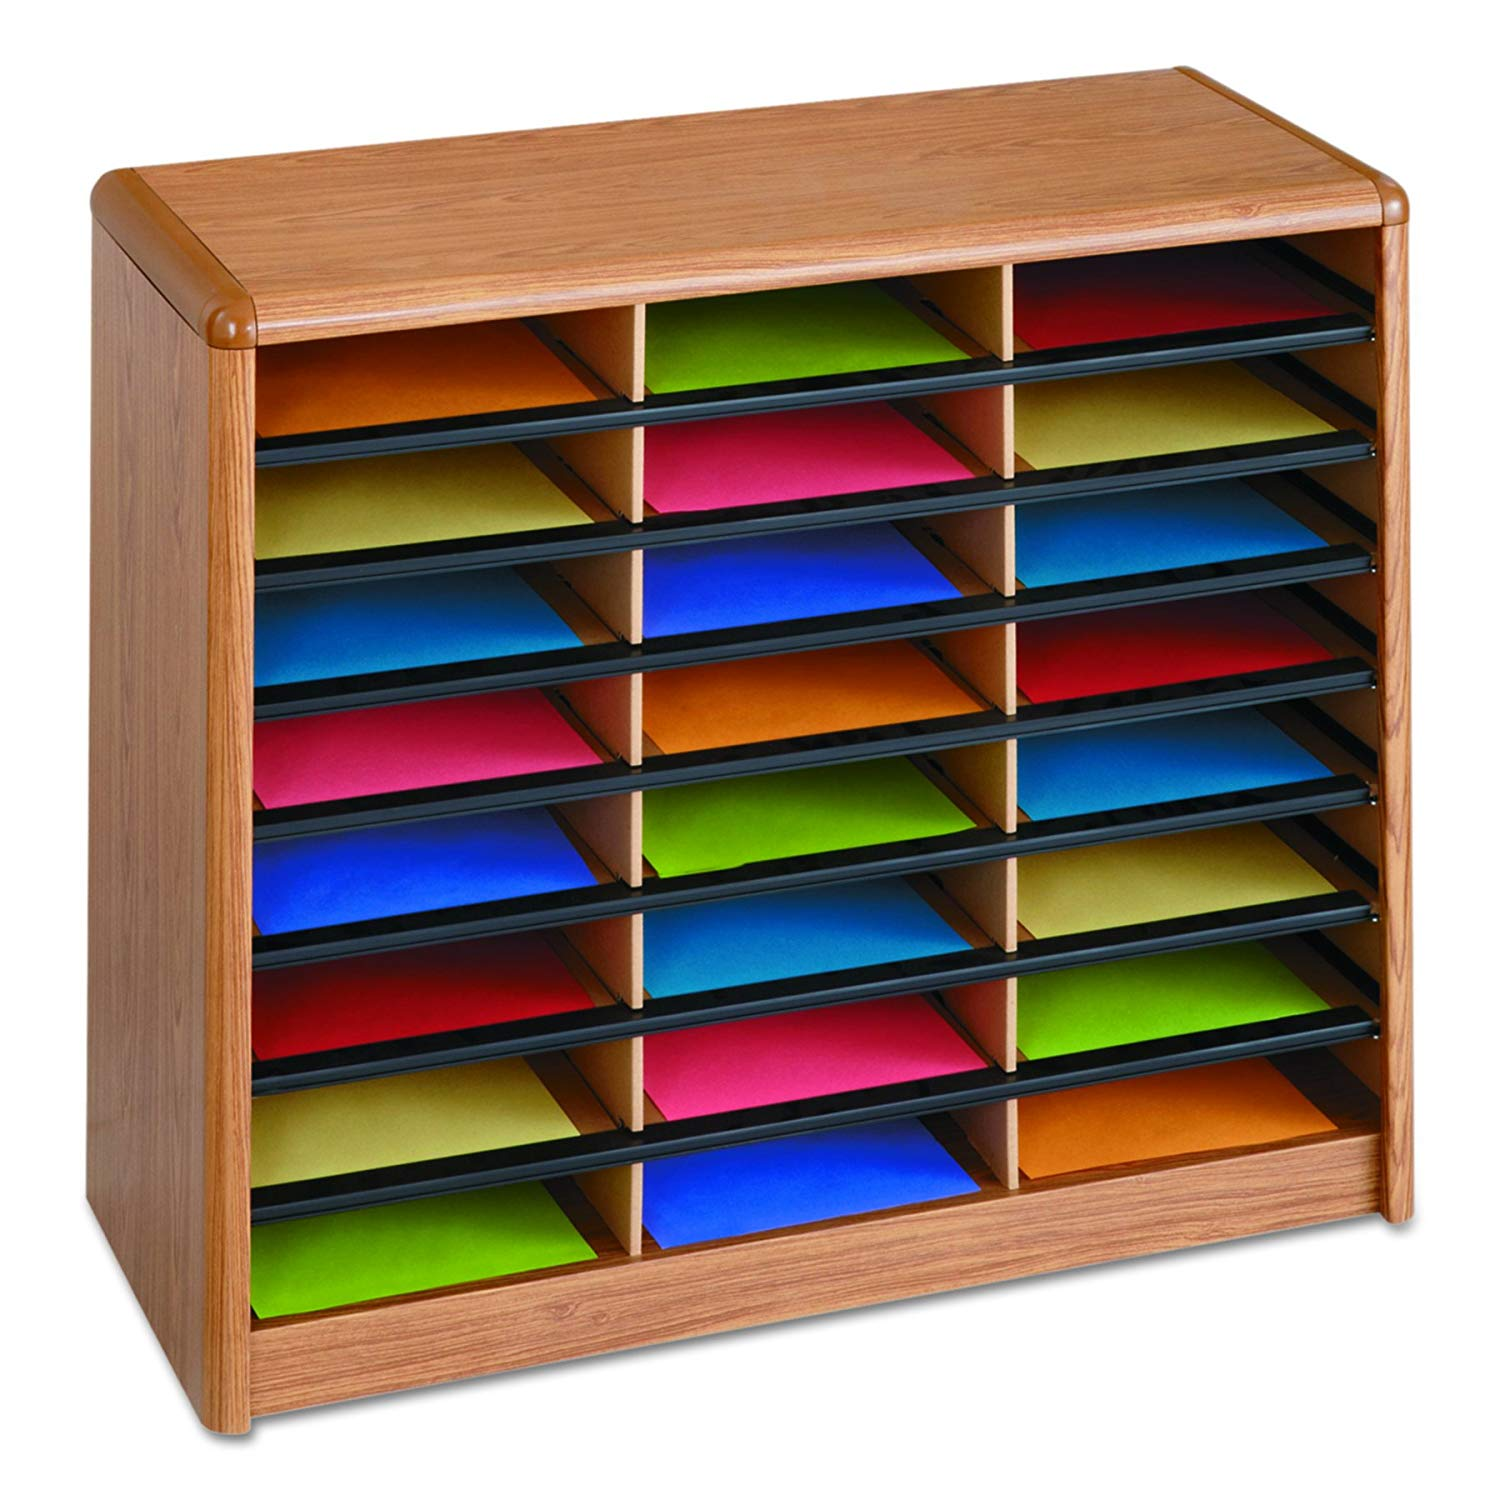 Safco 24 Compartment Literature Organizer, Wood, Adjustable Shelves - 7111MO